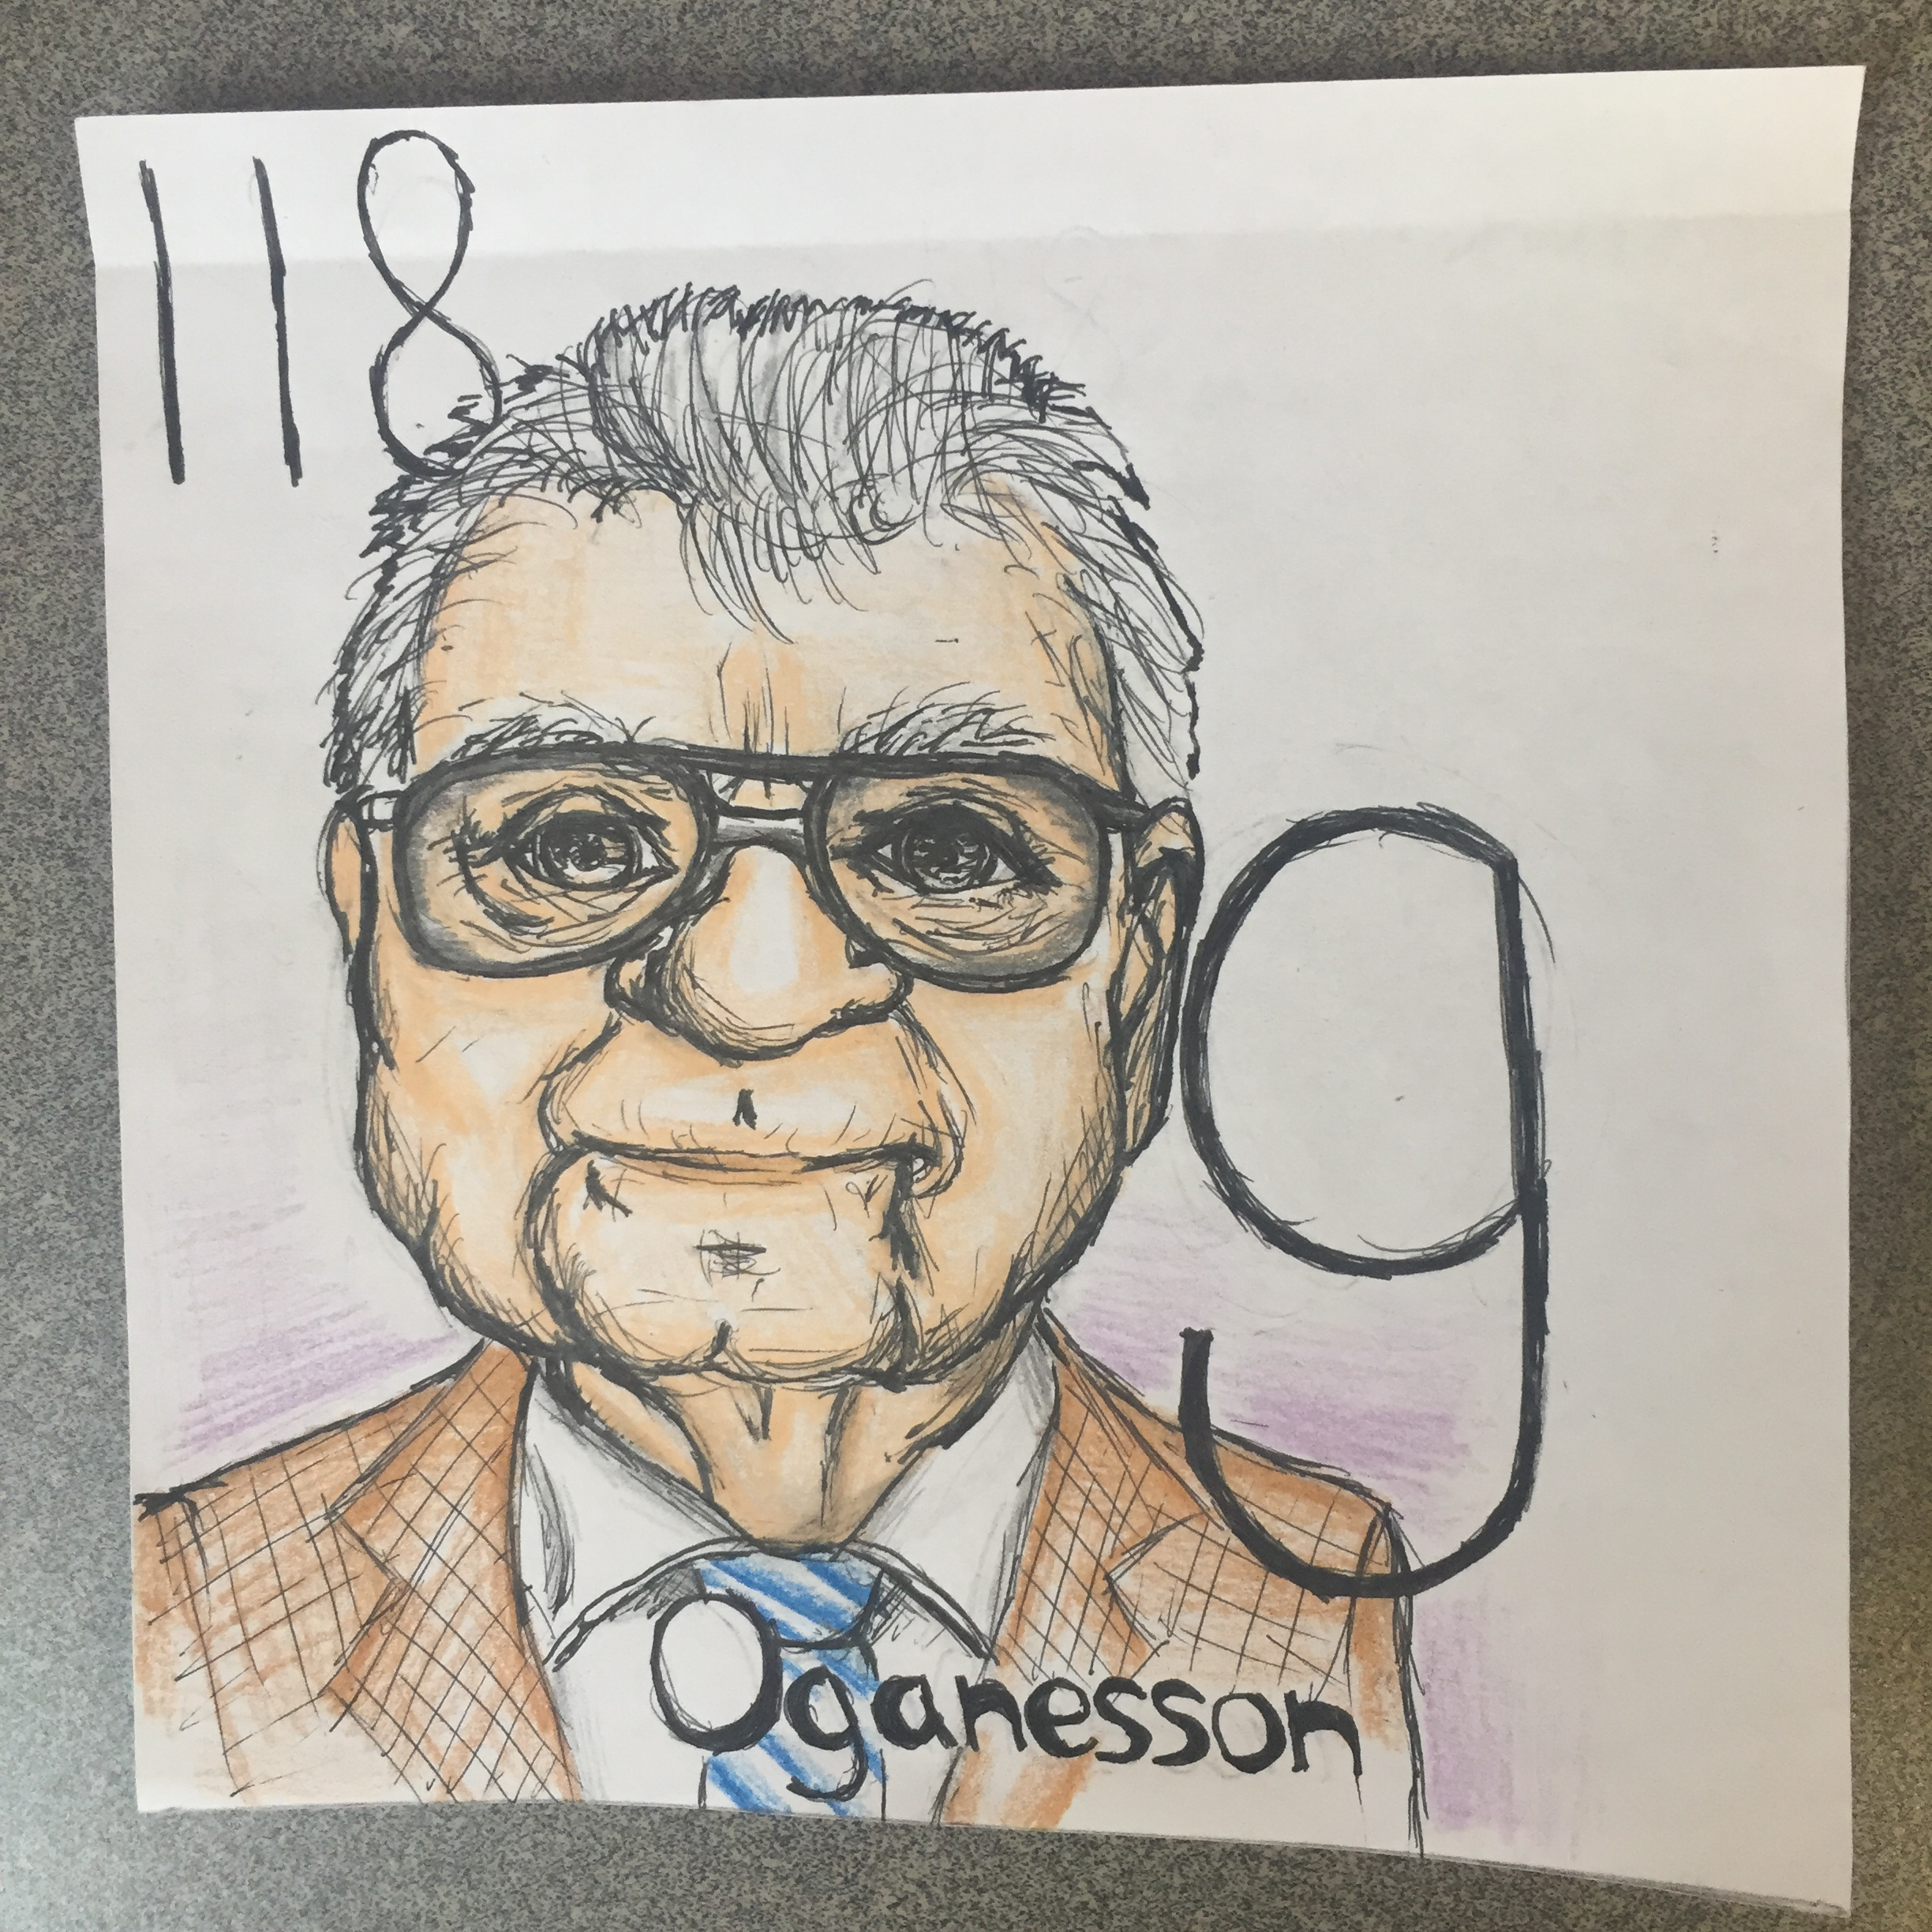 elemental tile of oganesson created with pencil crayon showing Dr. Oganessian.